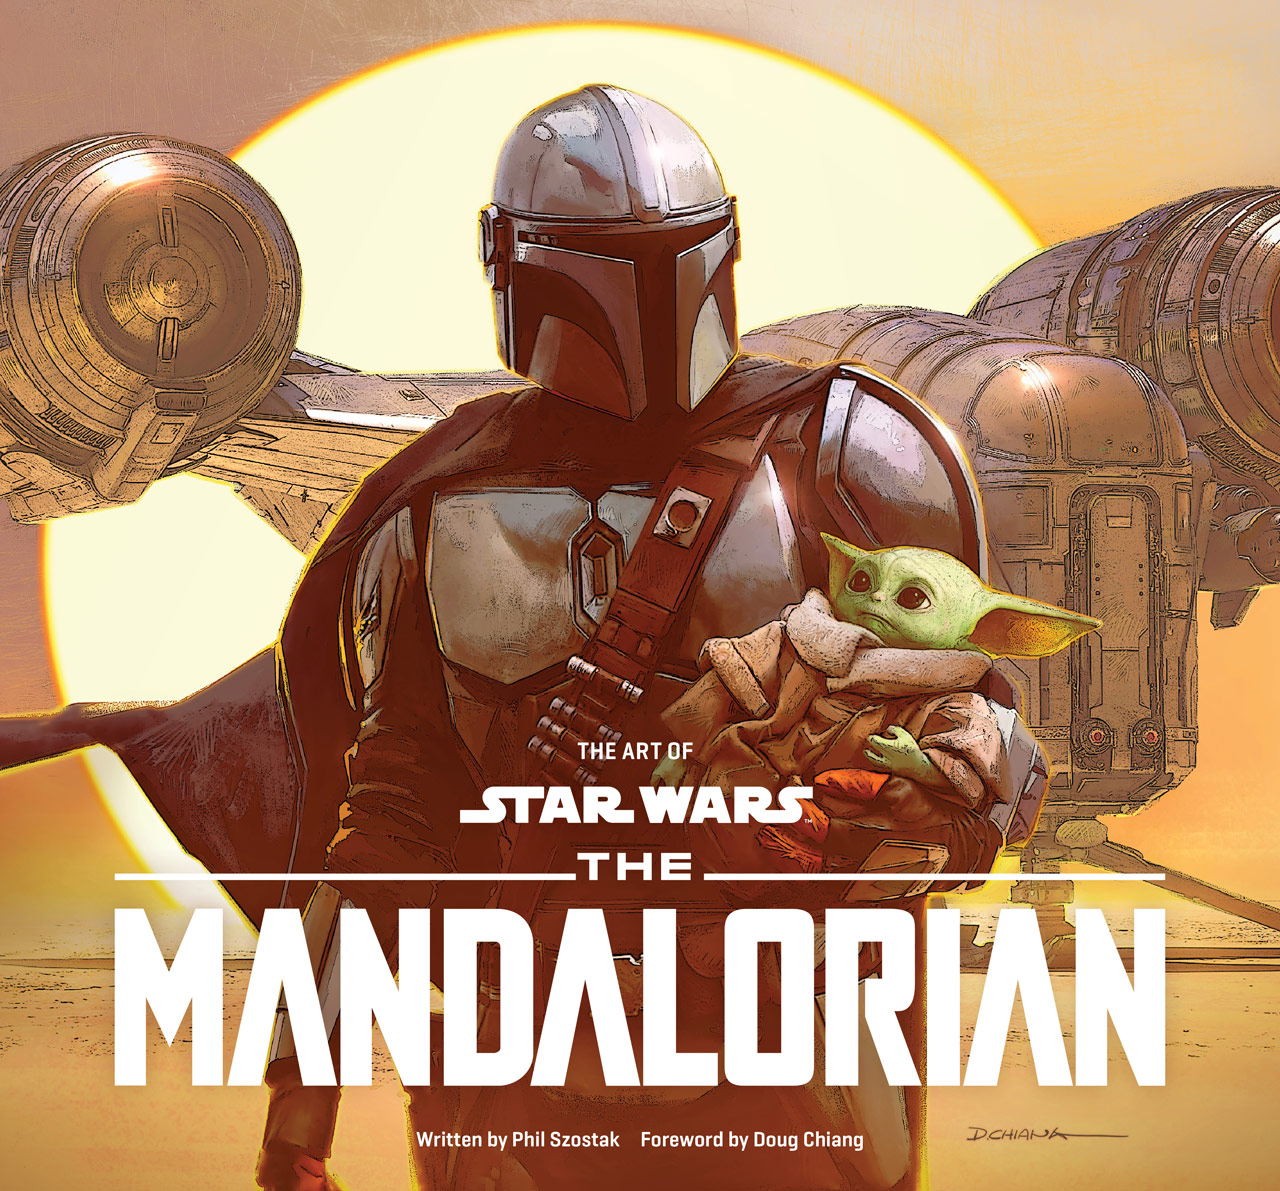 The Art of Star Wars: The Mandalorian (15.12.2020)